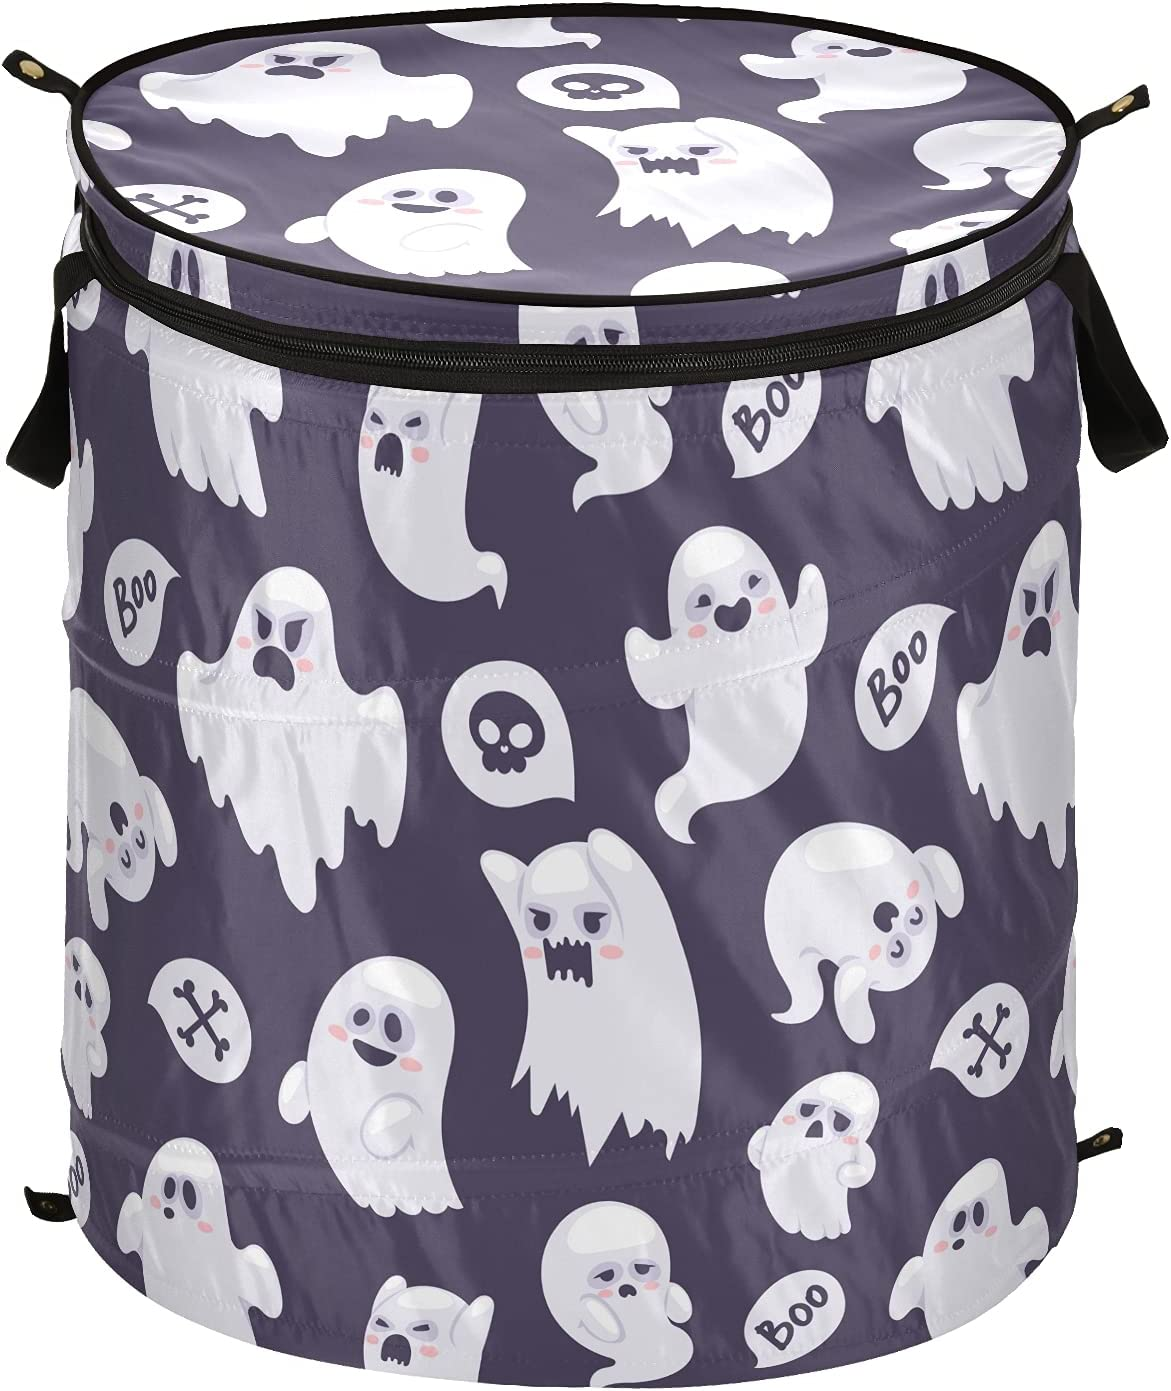 Happy Halloween Ghost Skull Monster Pop L Up Laundry Save money Challenge the lowest price of Japan with Hamper